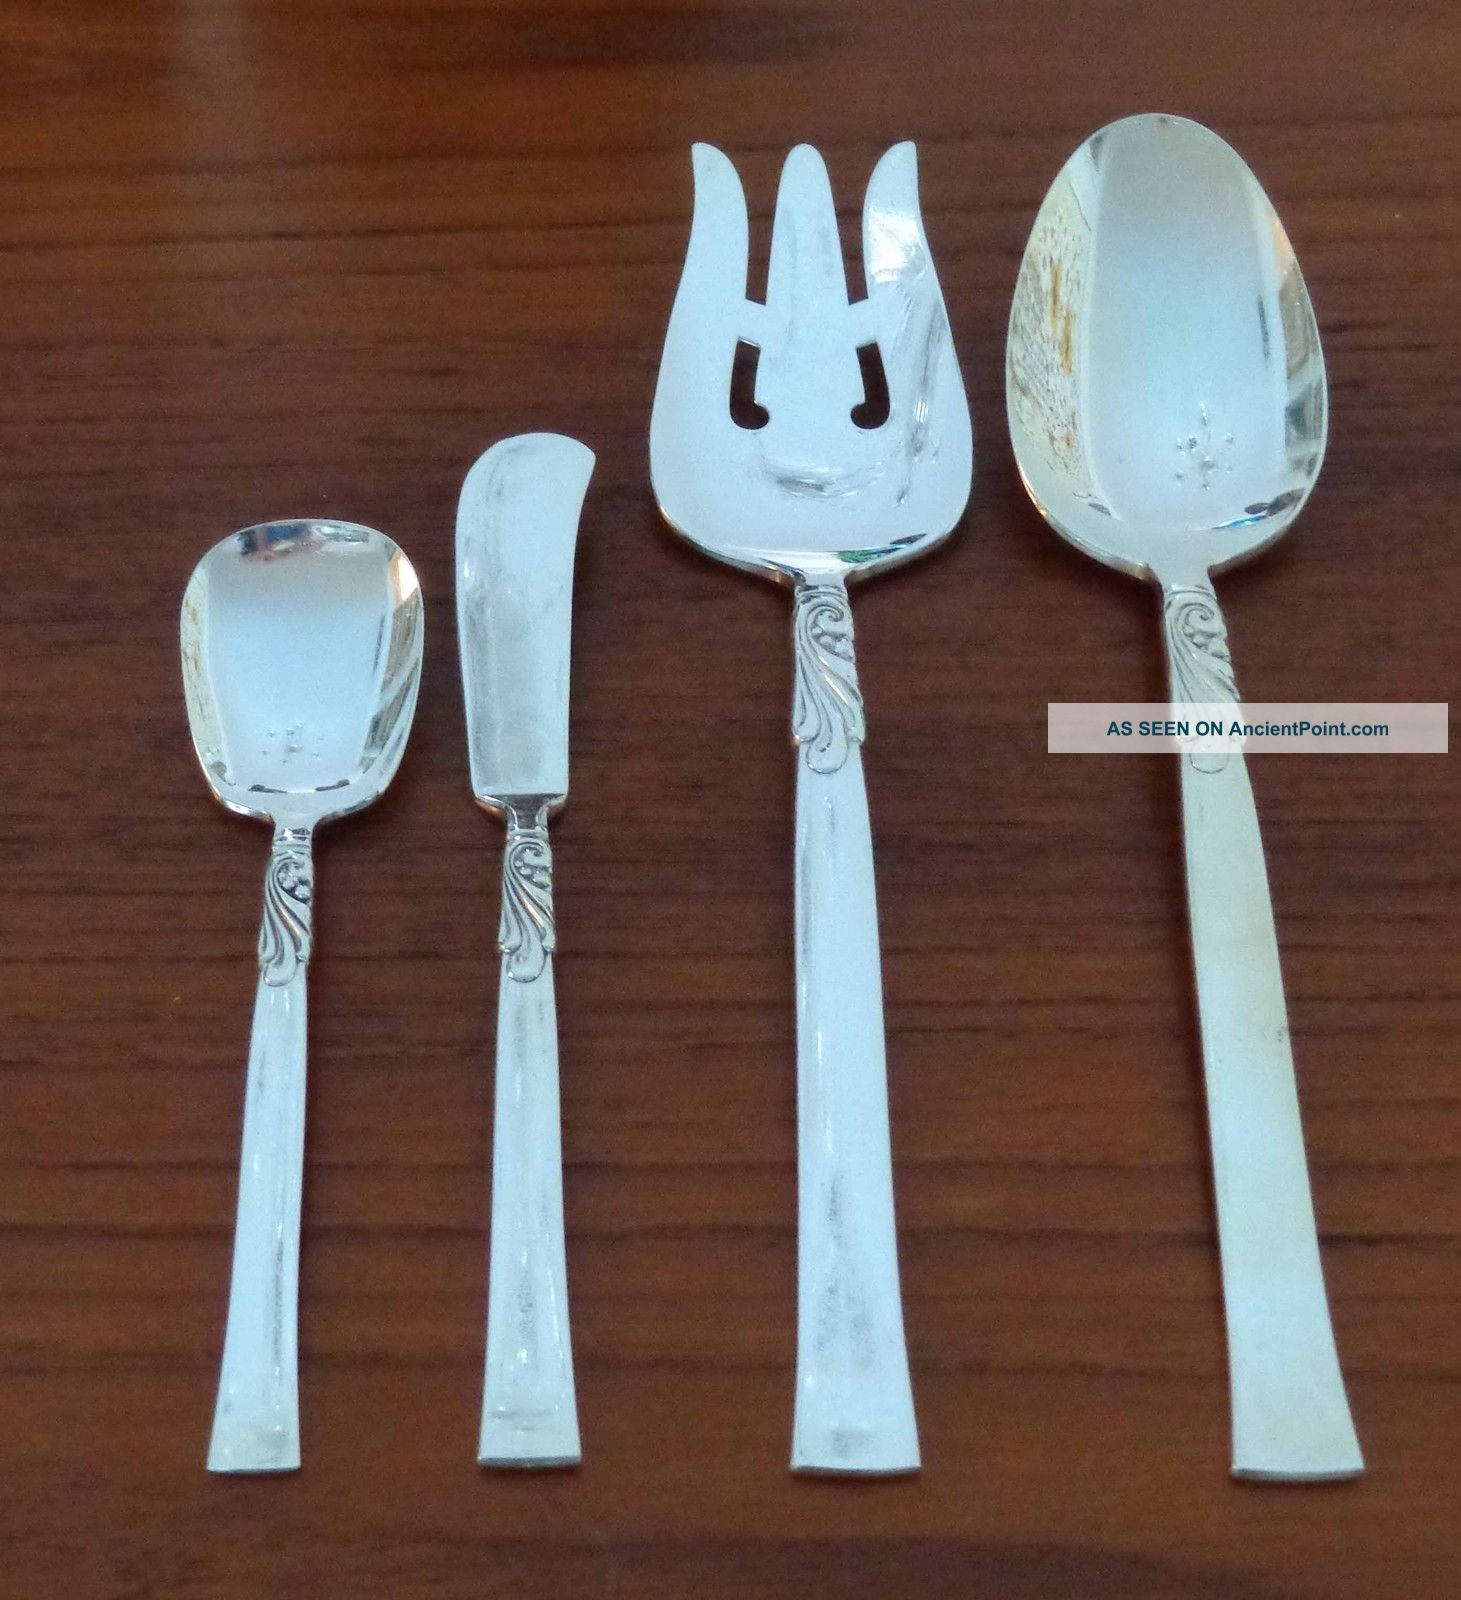 1955 Oneida Nobility Wind Song Silver Plate Flatware Serving Pieces Set Of 4 Oneida/Wm. A. Rogers photo